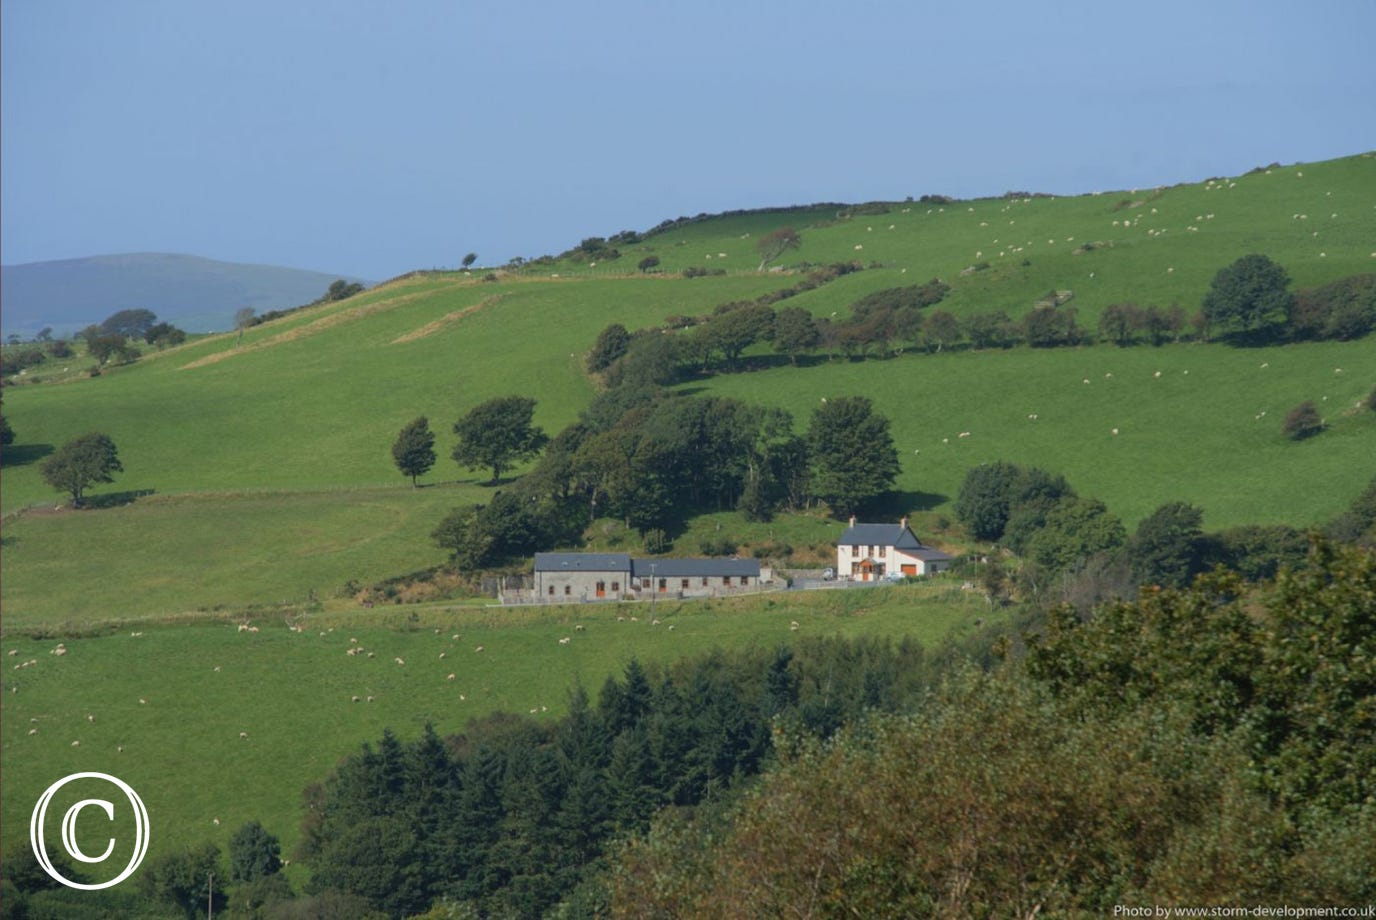 Two 5 star holiday cottages and the owners's farmhouse in a lovely setting. Photo by Storm Development